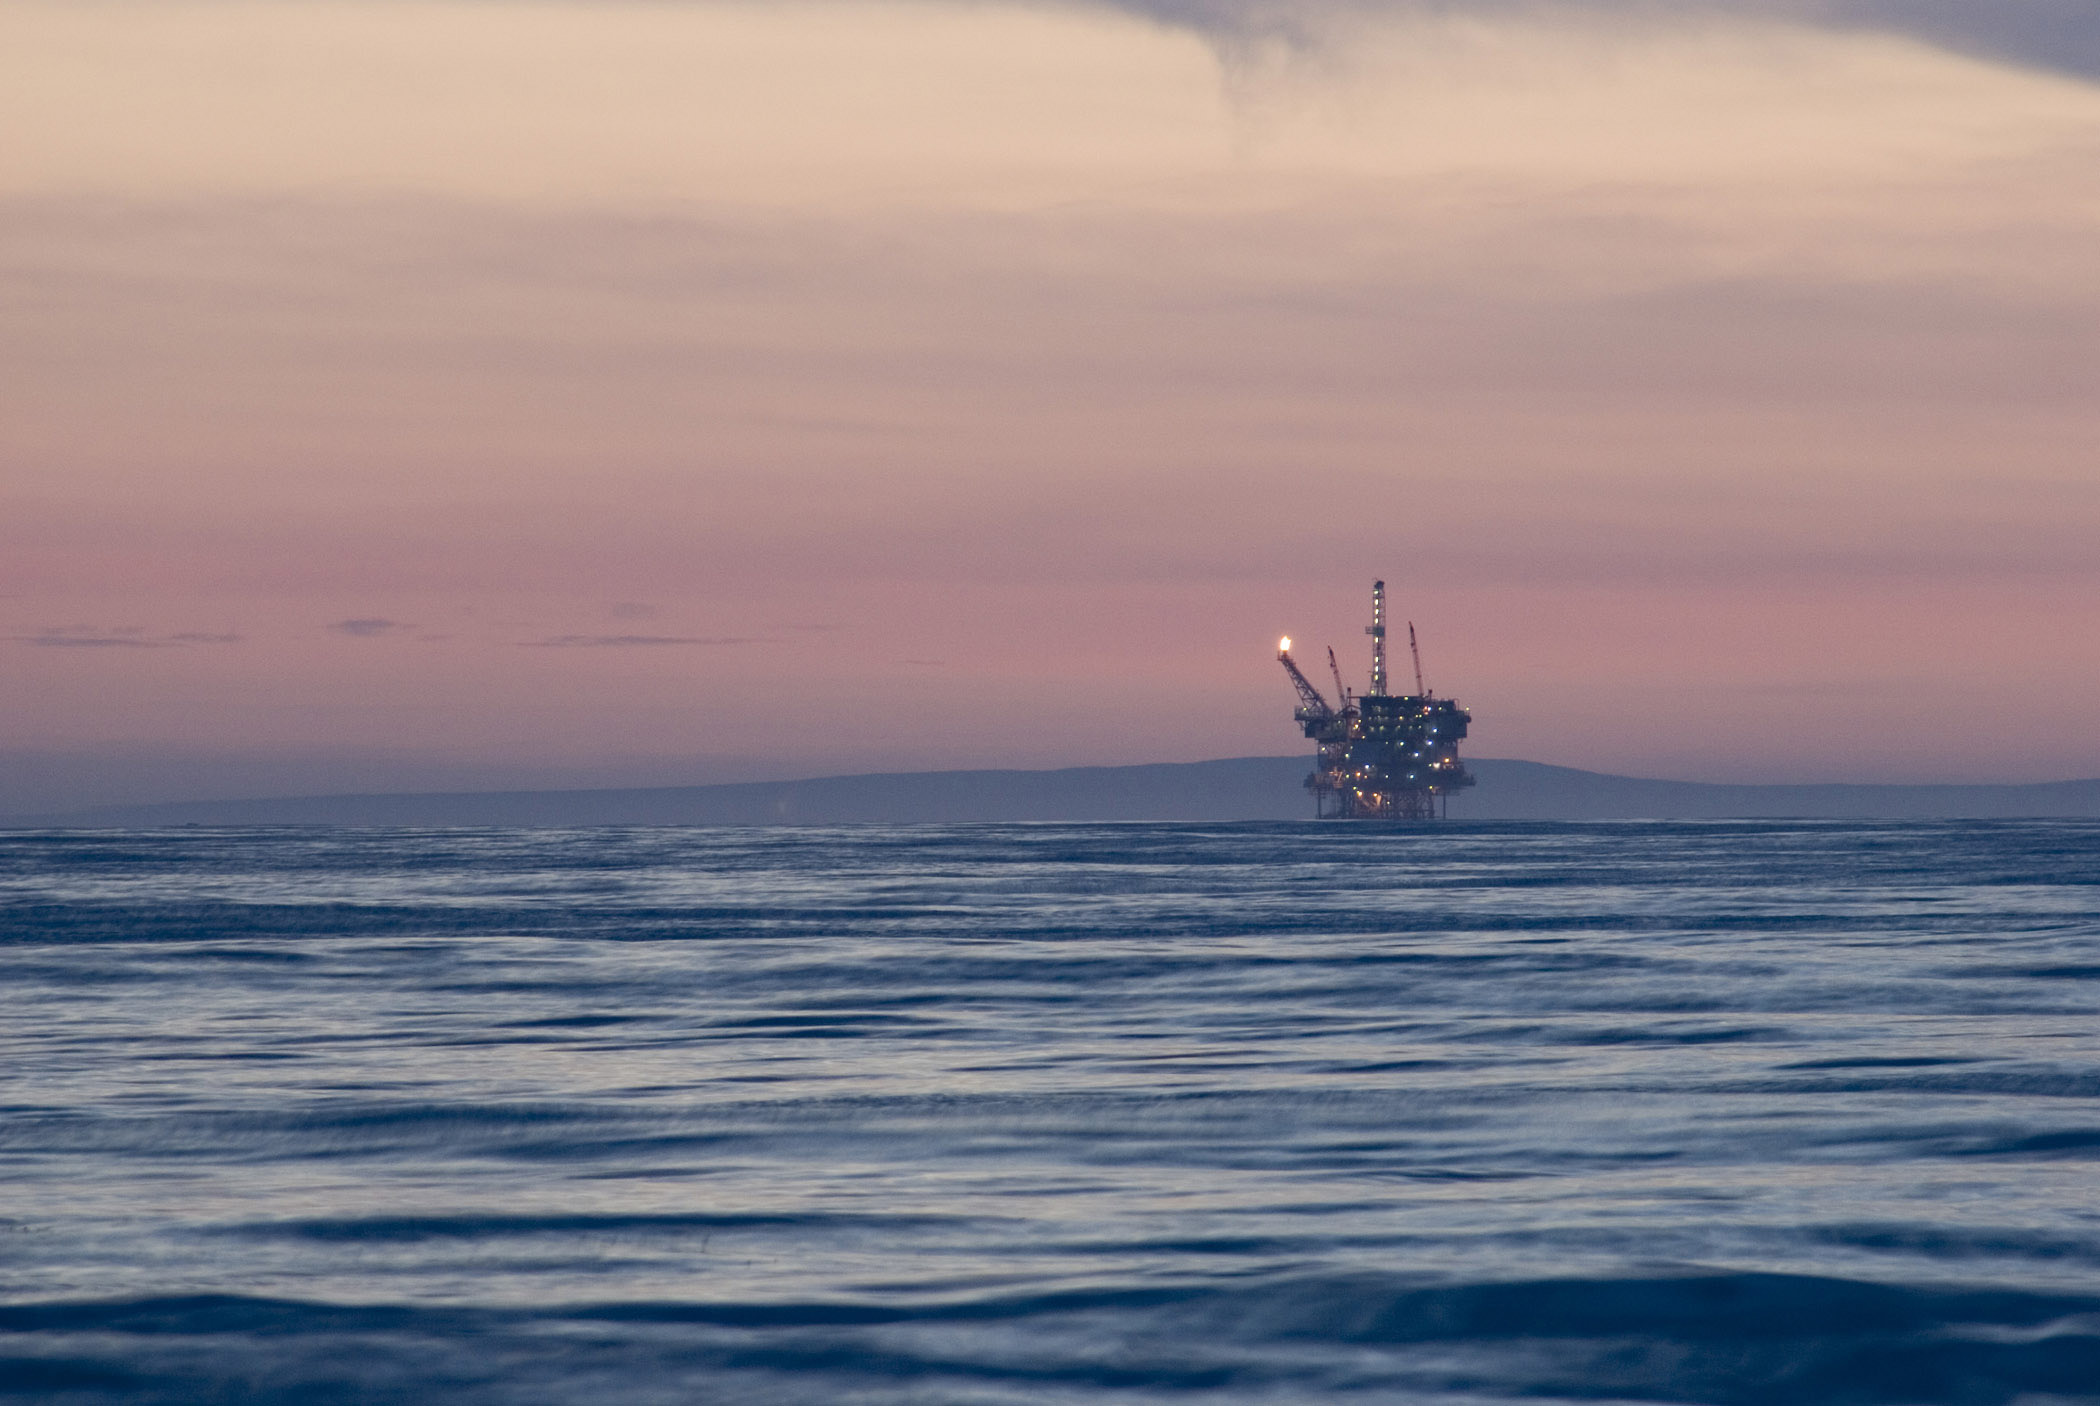 Offshore oil rig in the Gulf of Mexico off California at dusk with a colorful pink sky above a calm ocean